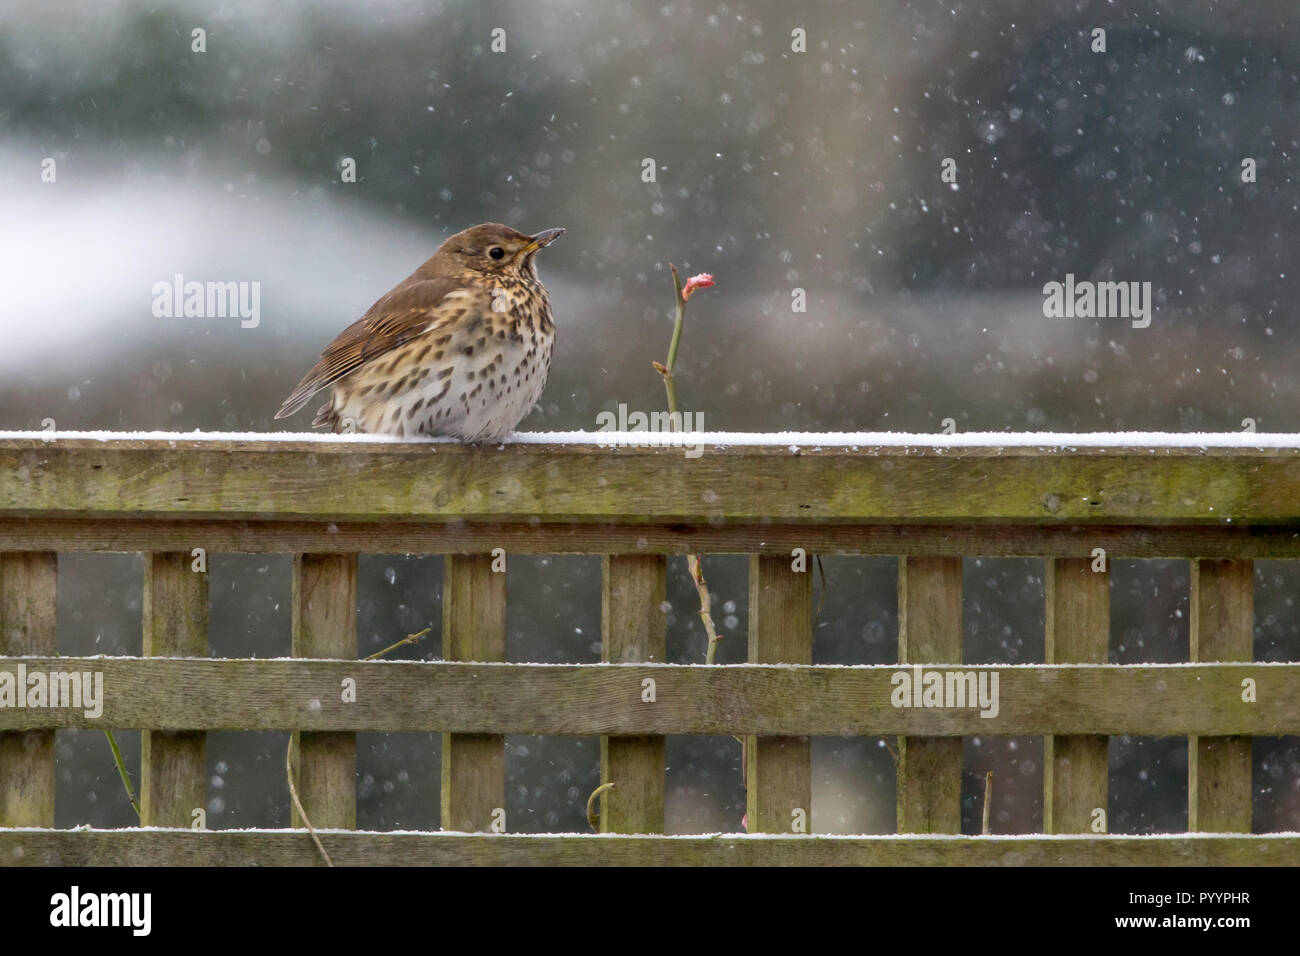 Song Thrush perched on a trellis in a garden in the snow, March 2018 Worcestershire, England - Stock Image